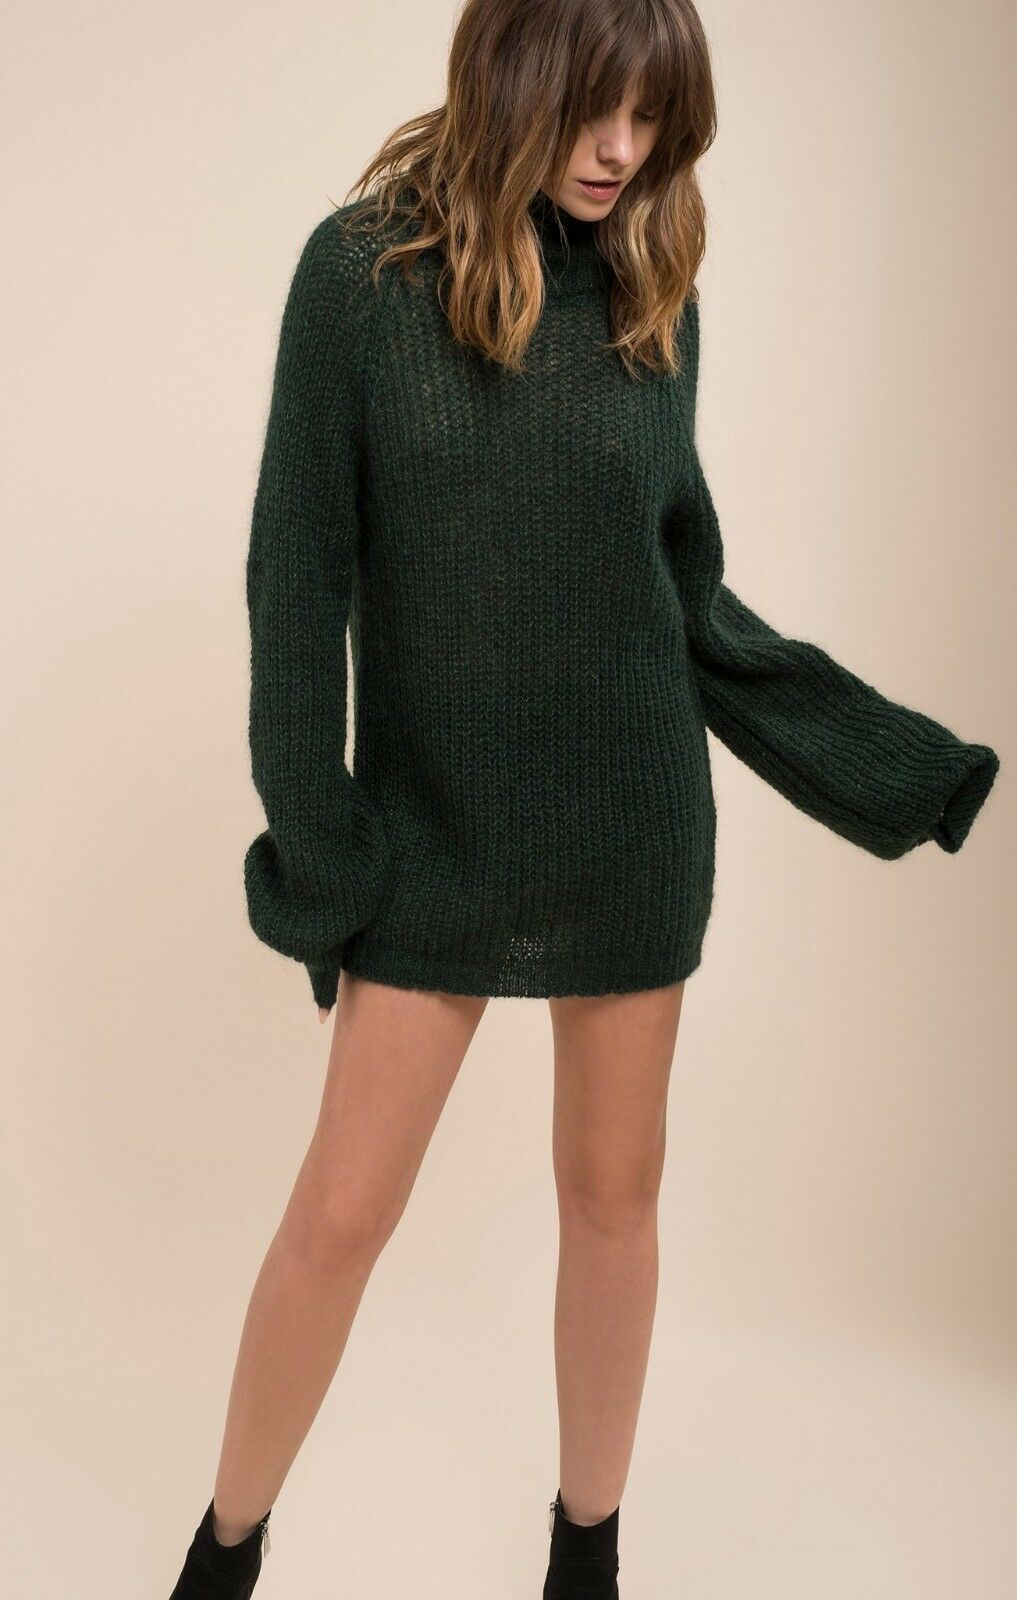 2018 NWT WOMENS MOON RIVER COCOON LONG SLEEVE OVERSIZE SWEATER  58 green